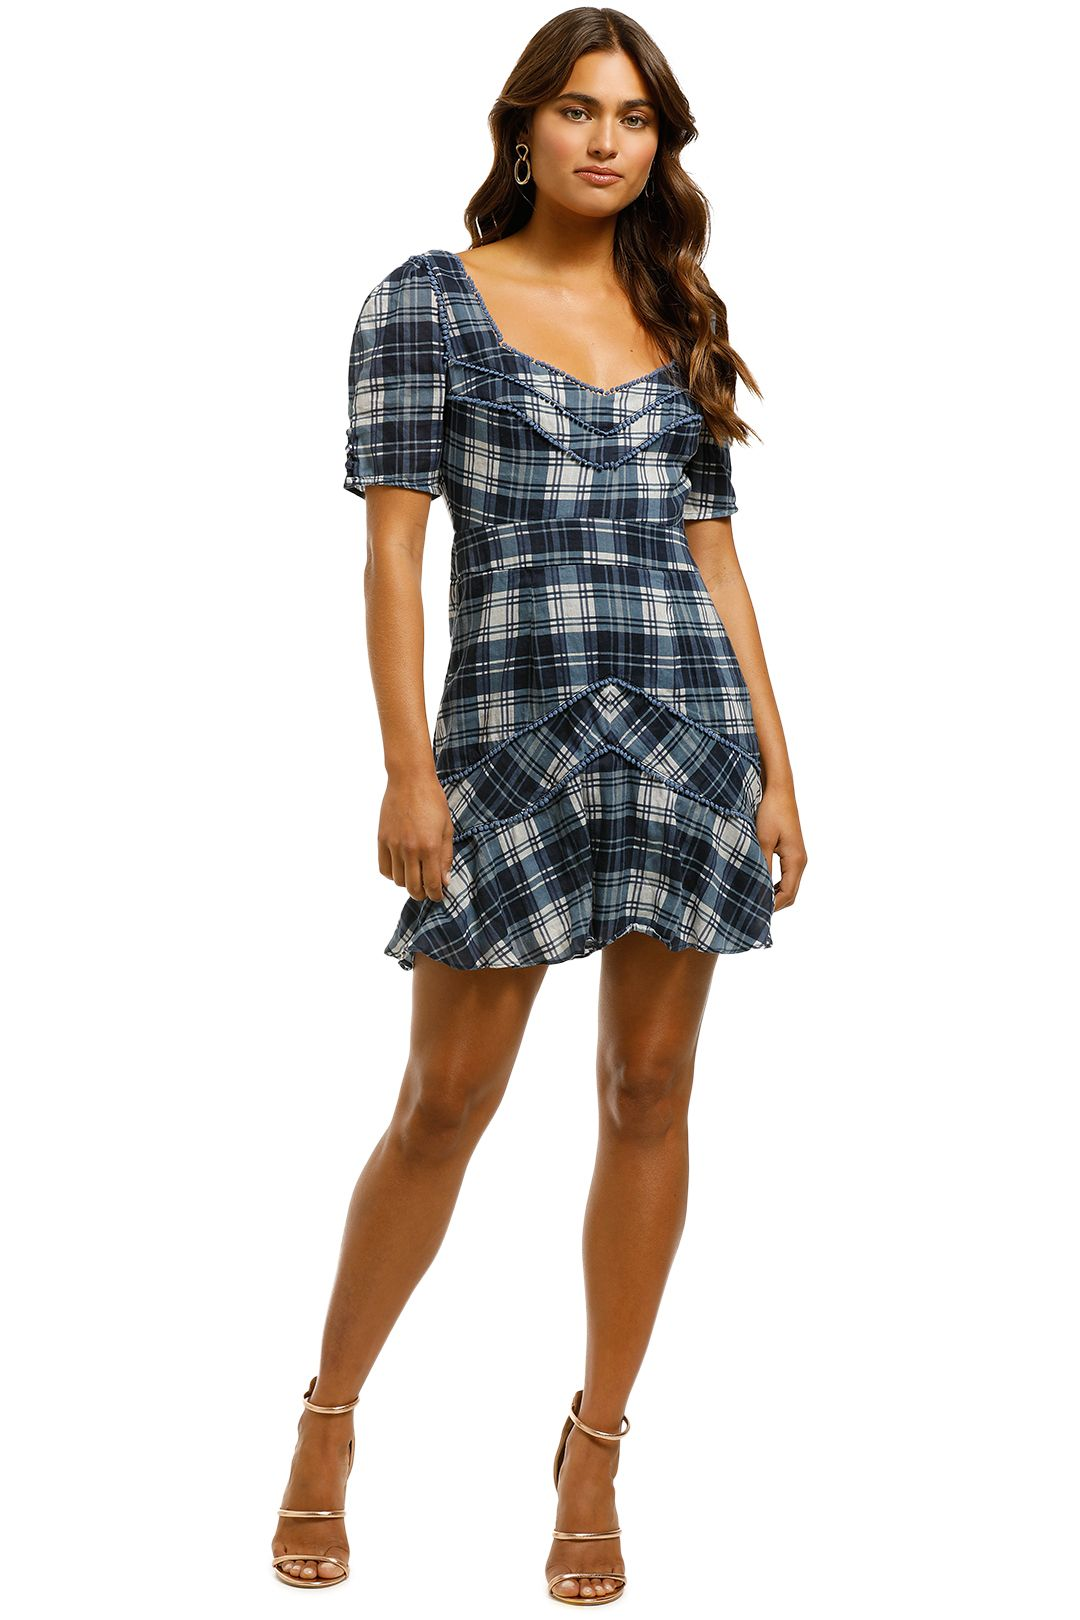 Stevie-May-Devon-Mini-Dress-Navy-Plaid-Print-Front